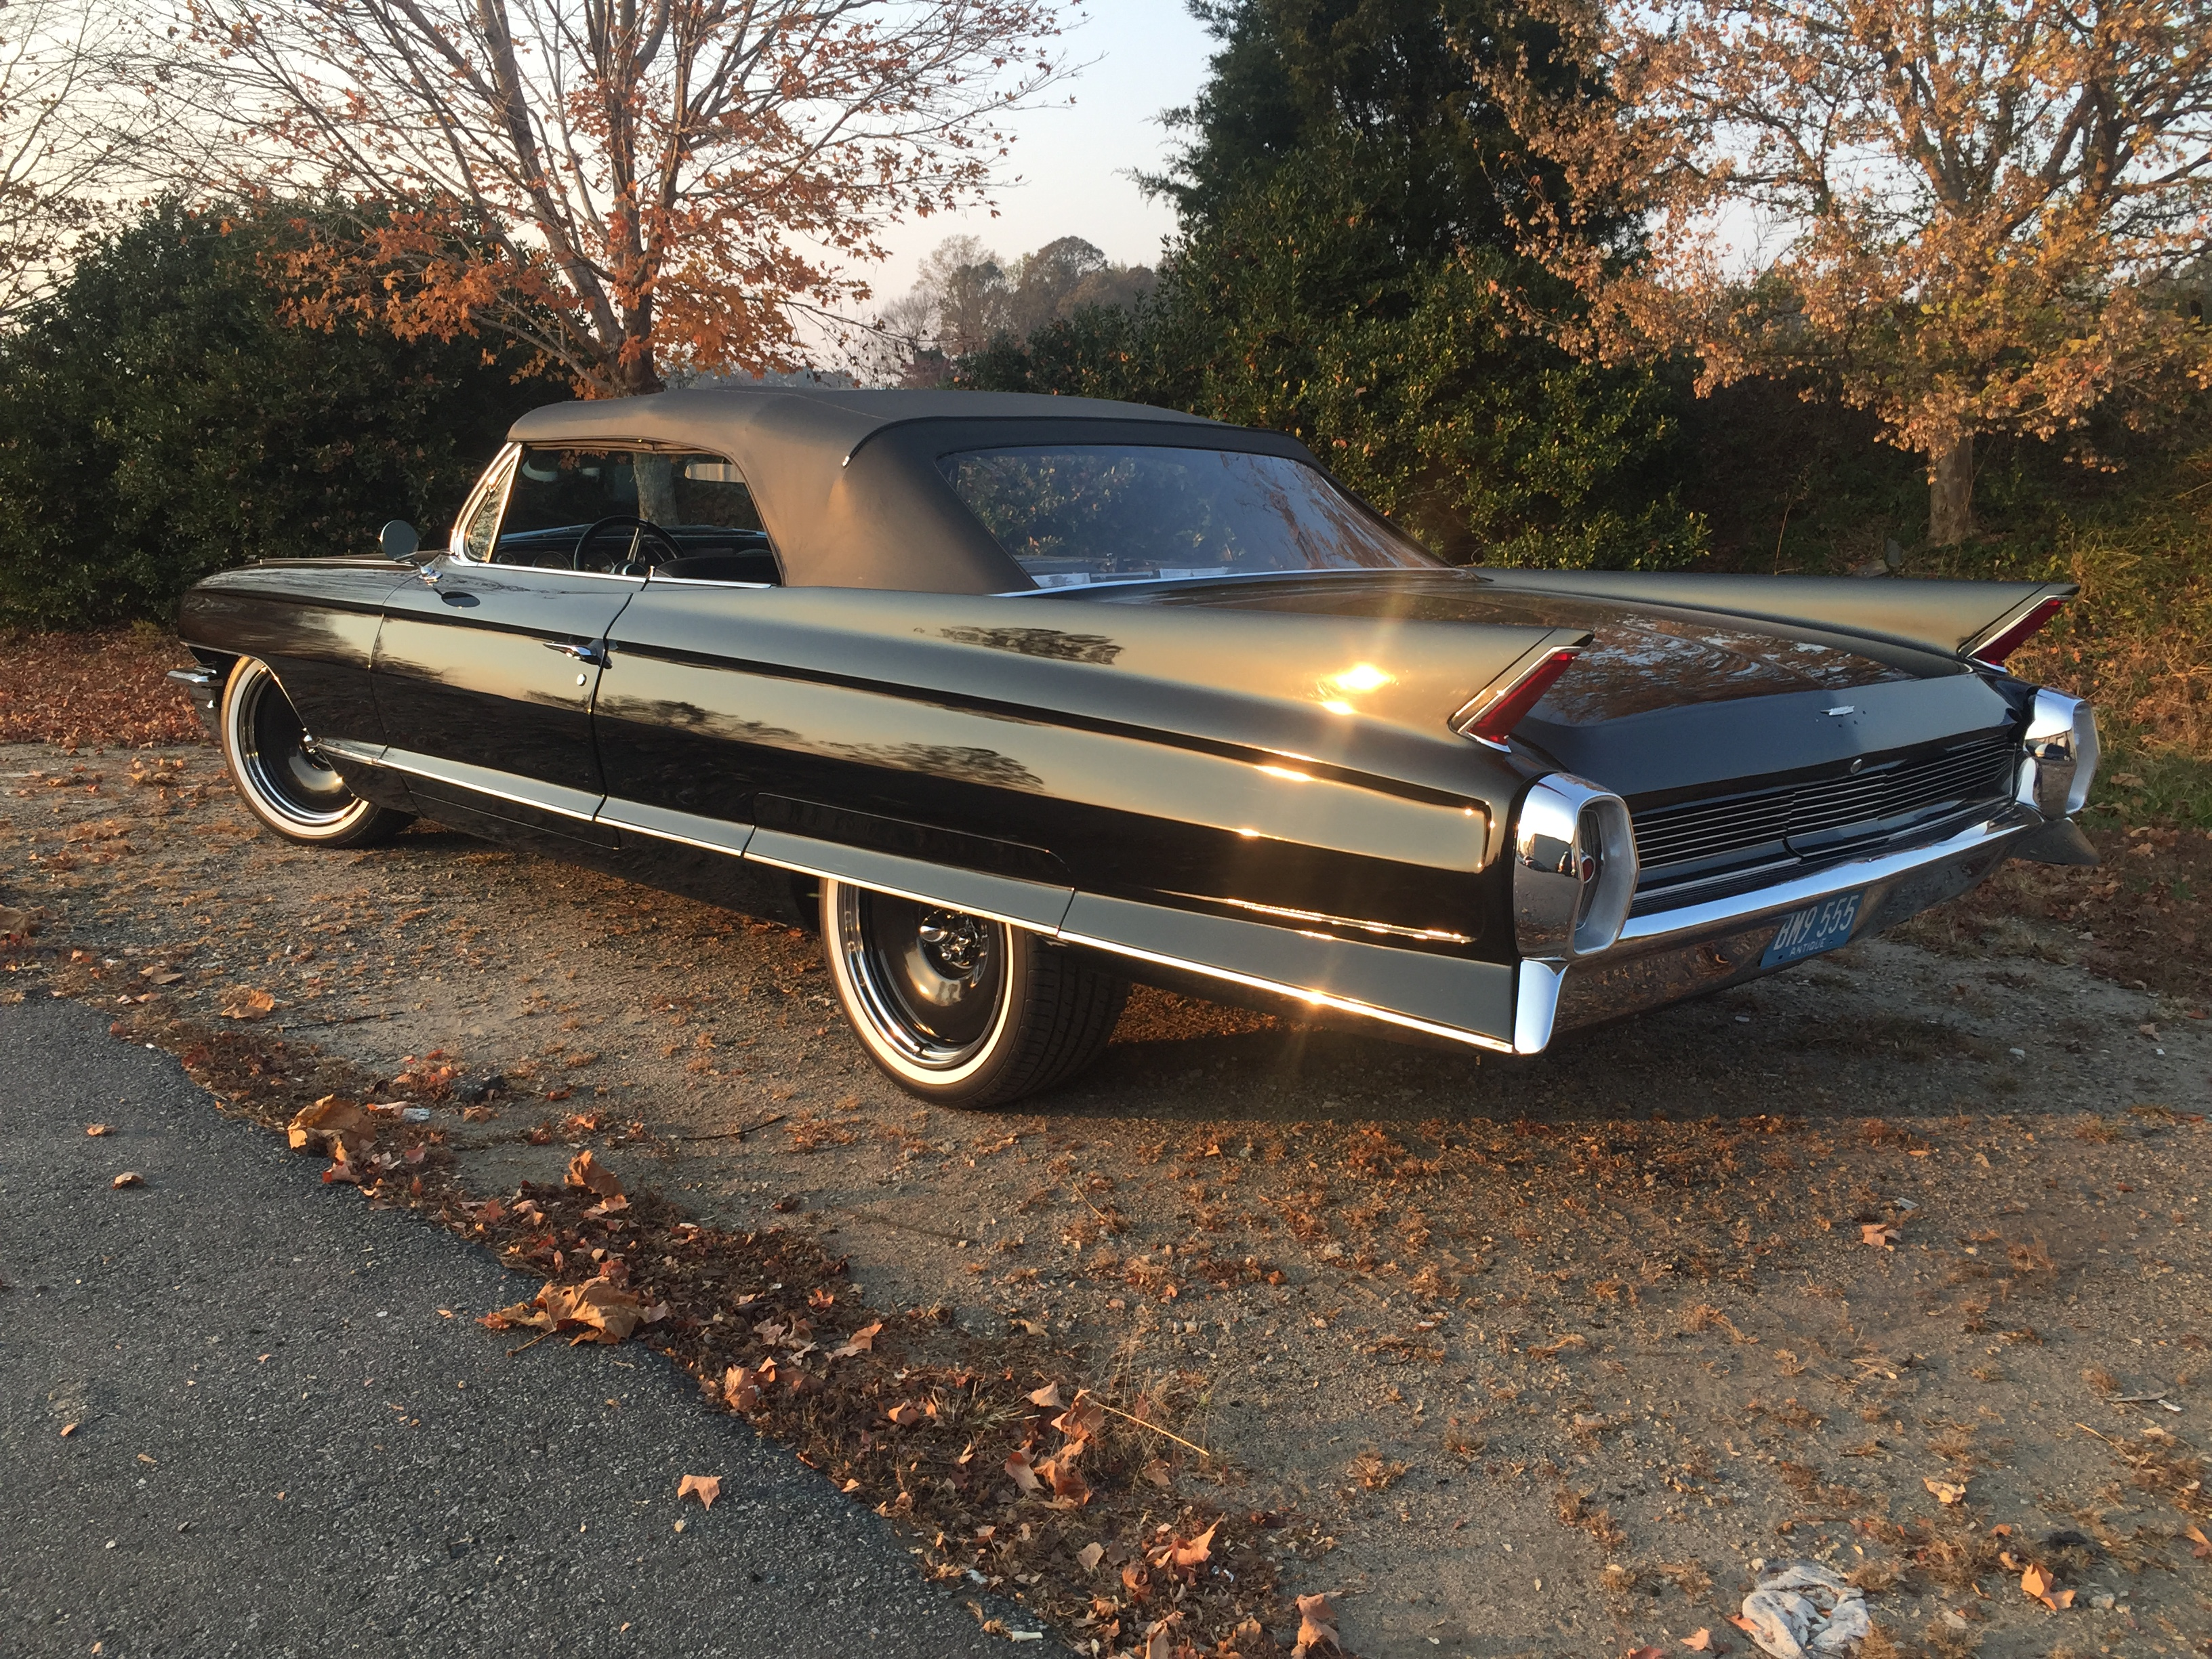 1962 Cadillac by QMM